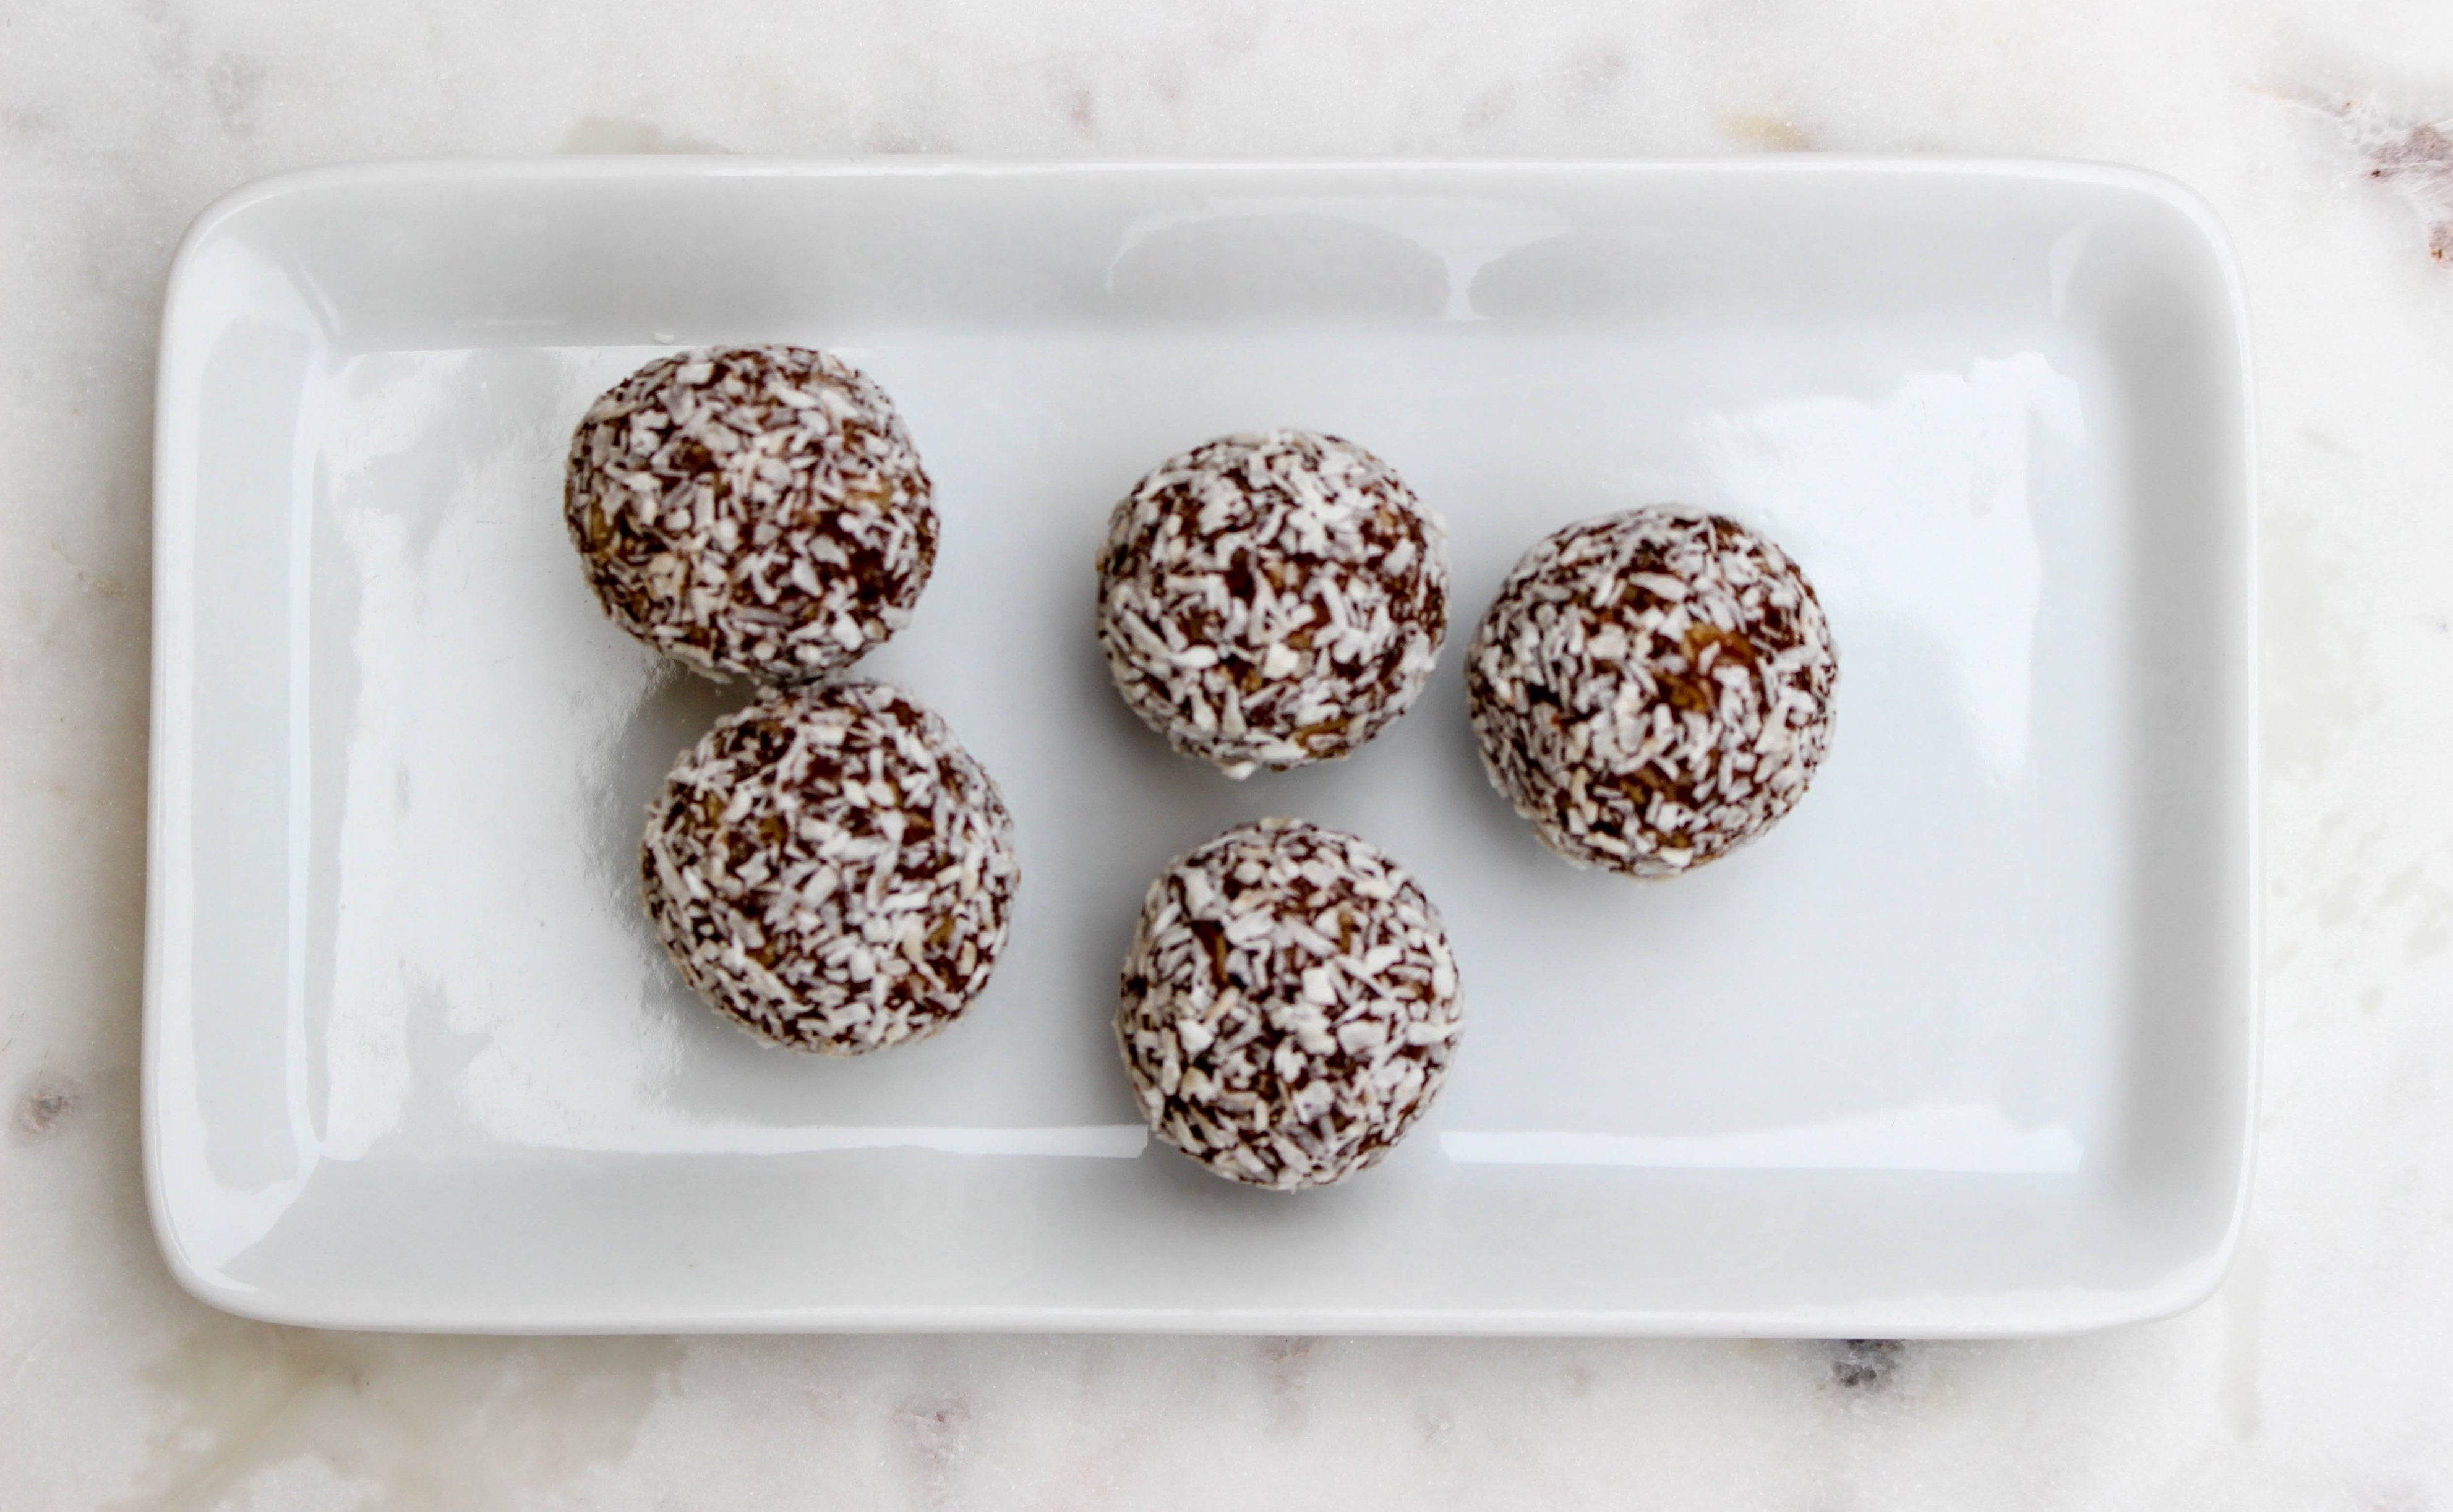 Chocolate Peanut Butter Energy Bites